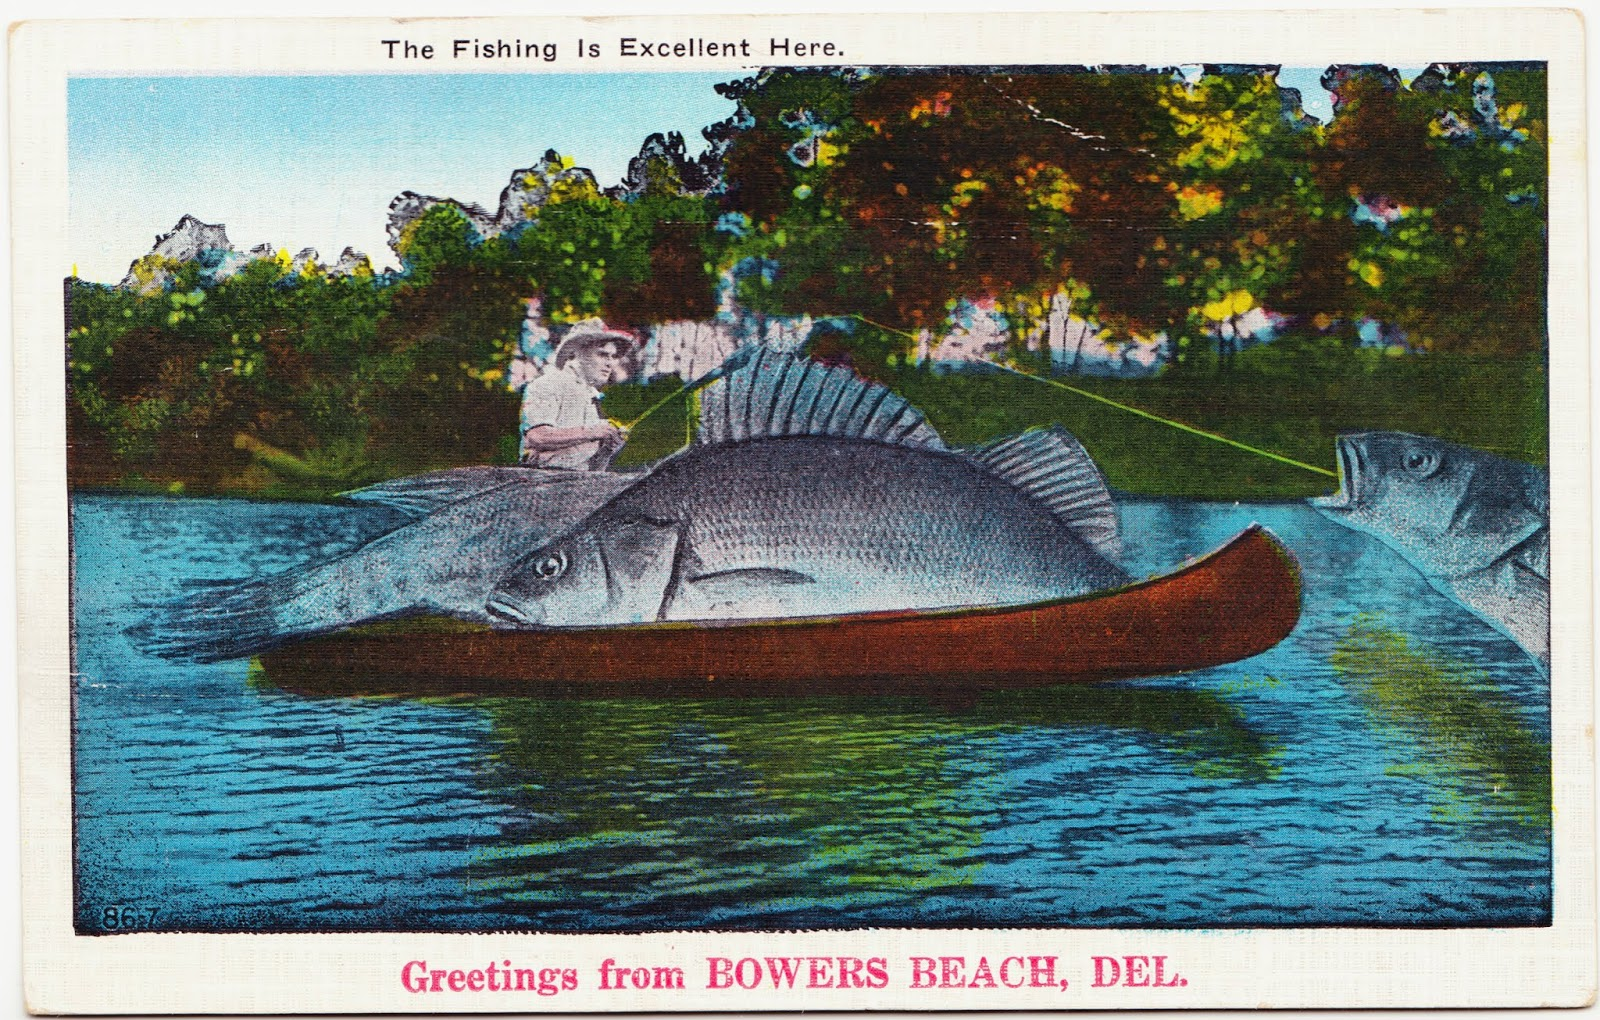 Pre Printed Text On The Front Of This Exaggerated Postcard Featuring A Huge Fish Fishing Is Excellent Here And Greetings From Bowers Beach Del